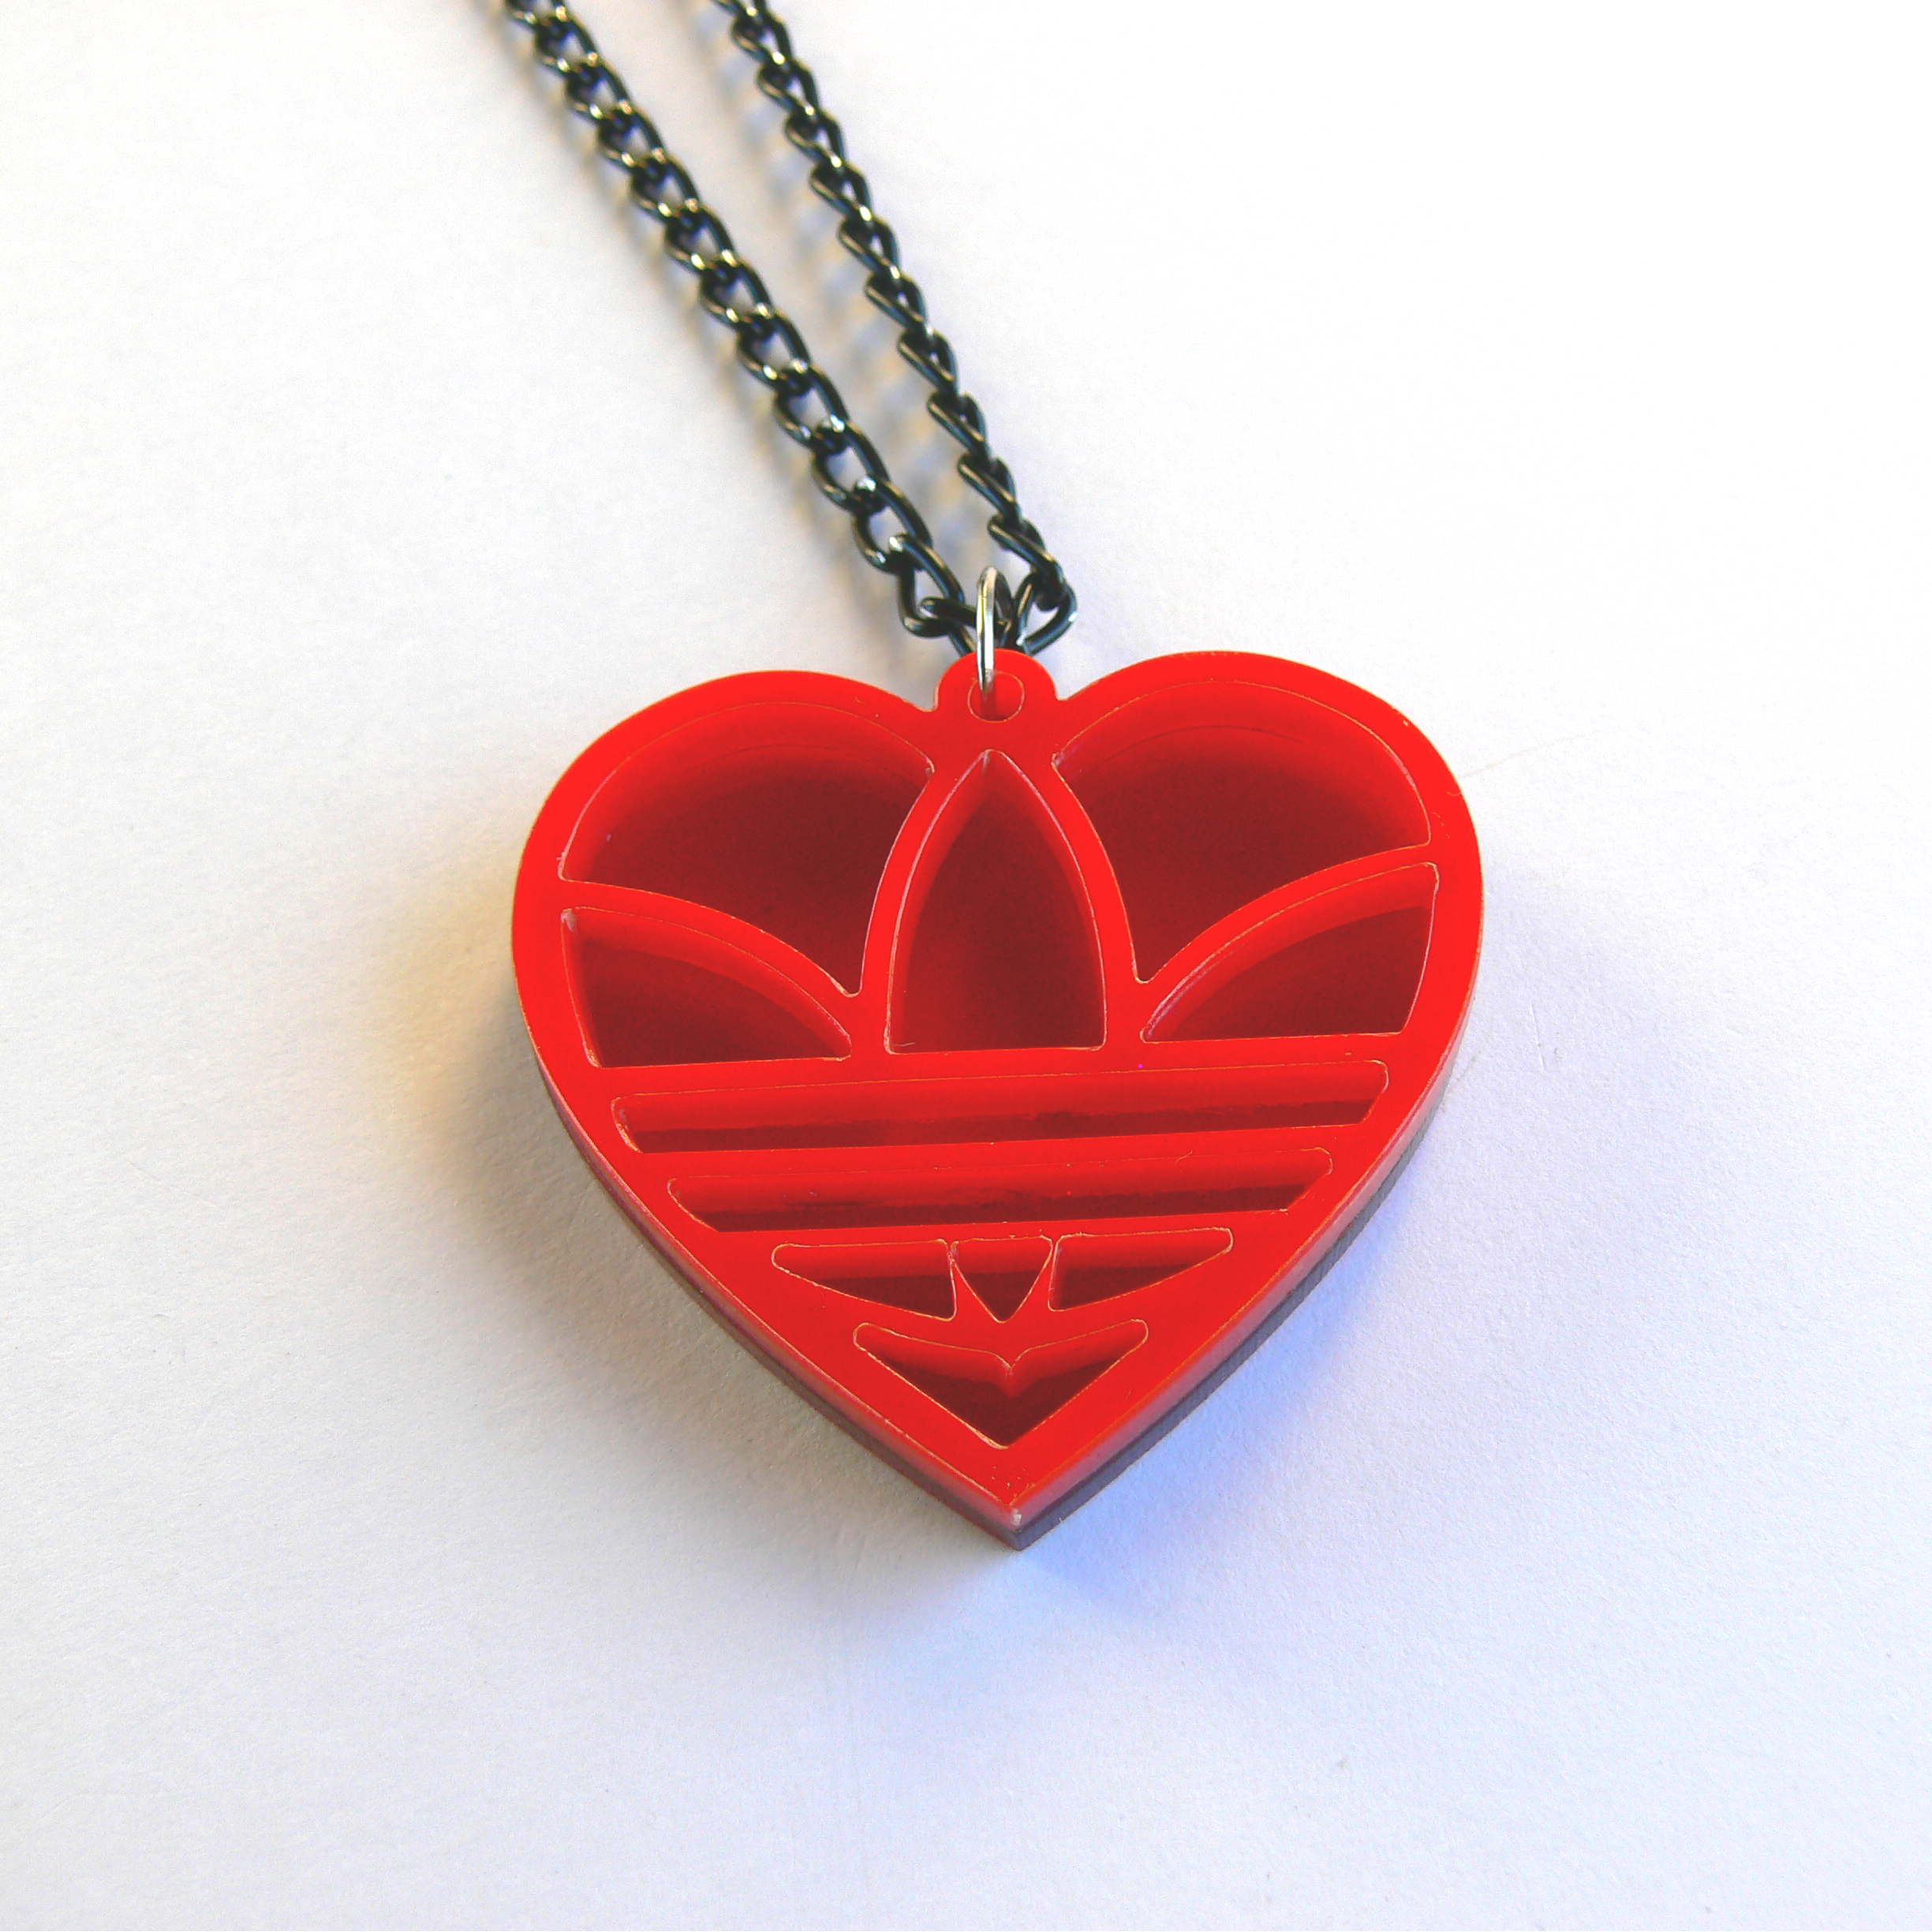 original on handmade product macrame valentine red s gift necklace under heart chain gold plated pendant